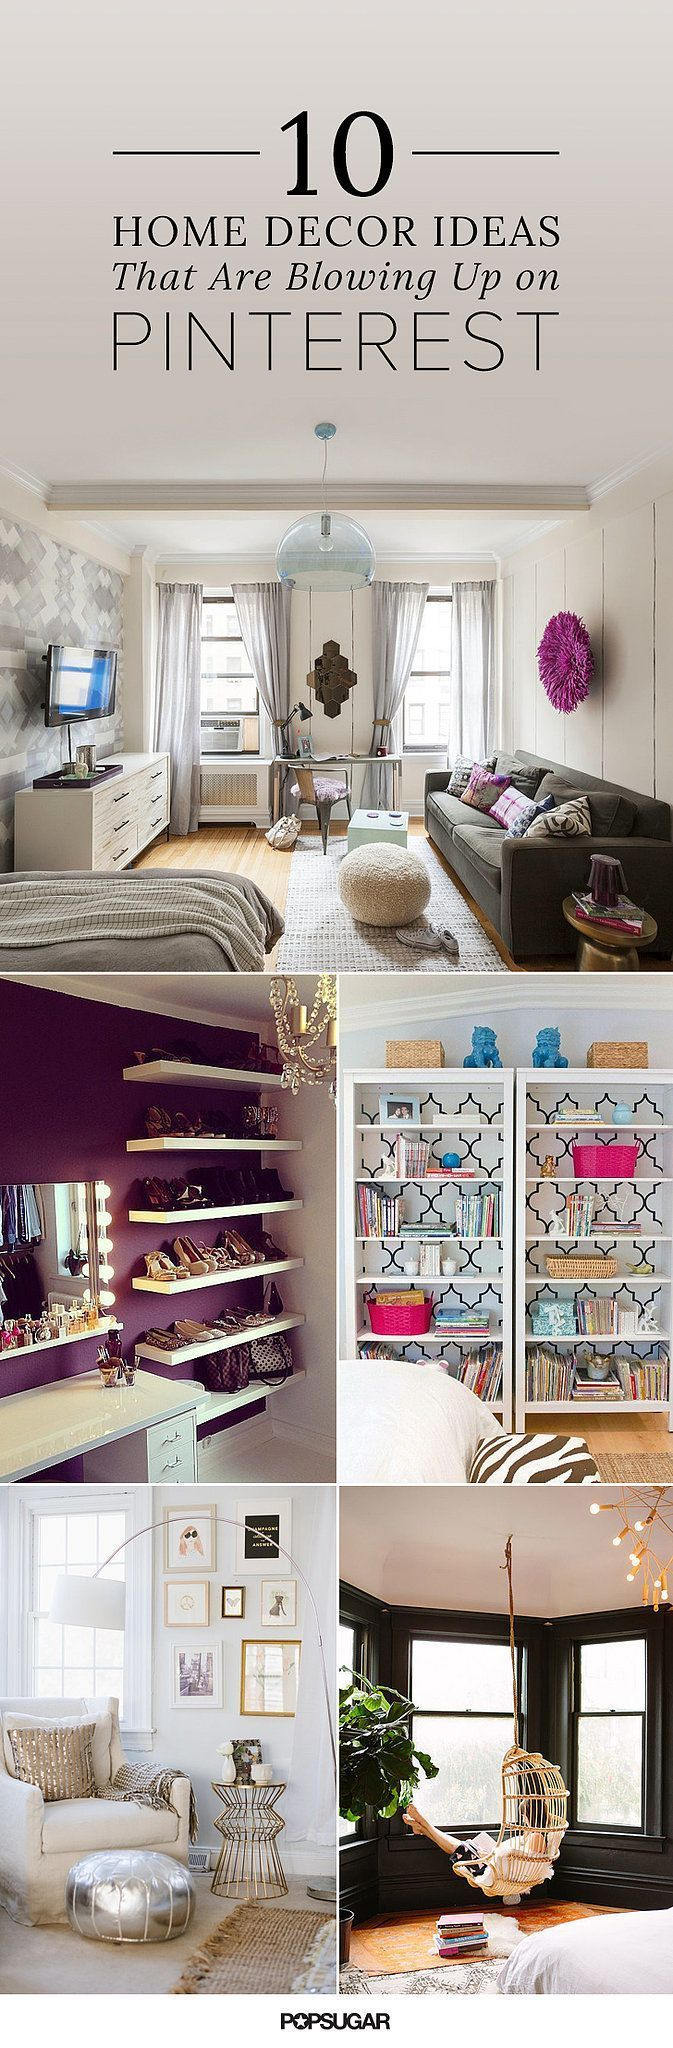 2905 best images about Home Decorating Inspiration on